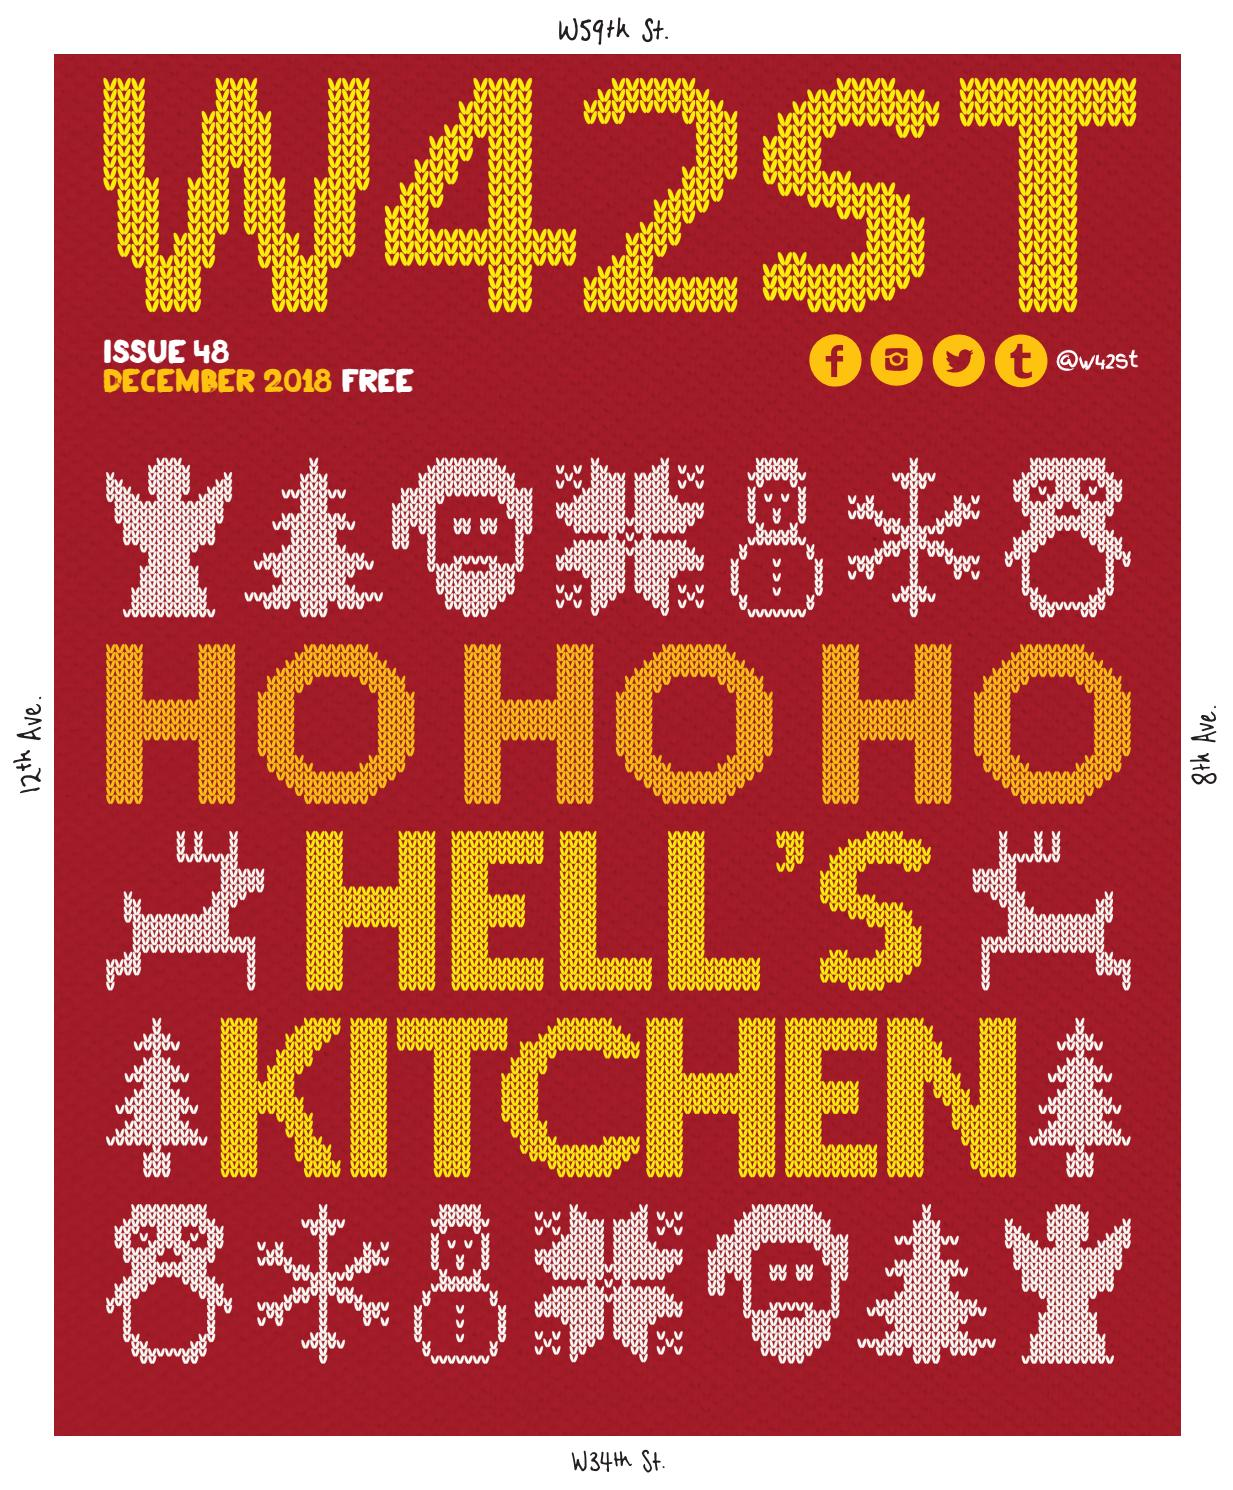 W42ST Issue 48 Ho Ho Ho Hell's Kitchen by W42ST Magazine - issuu